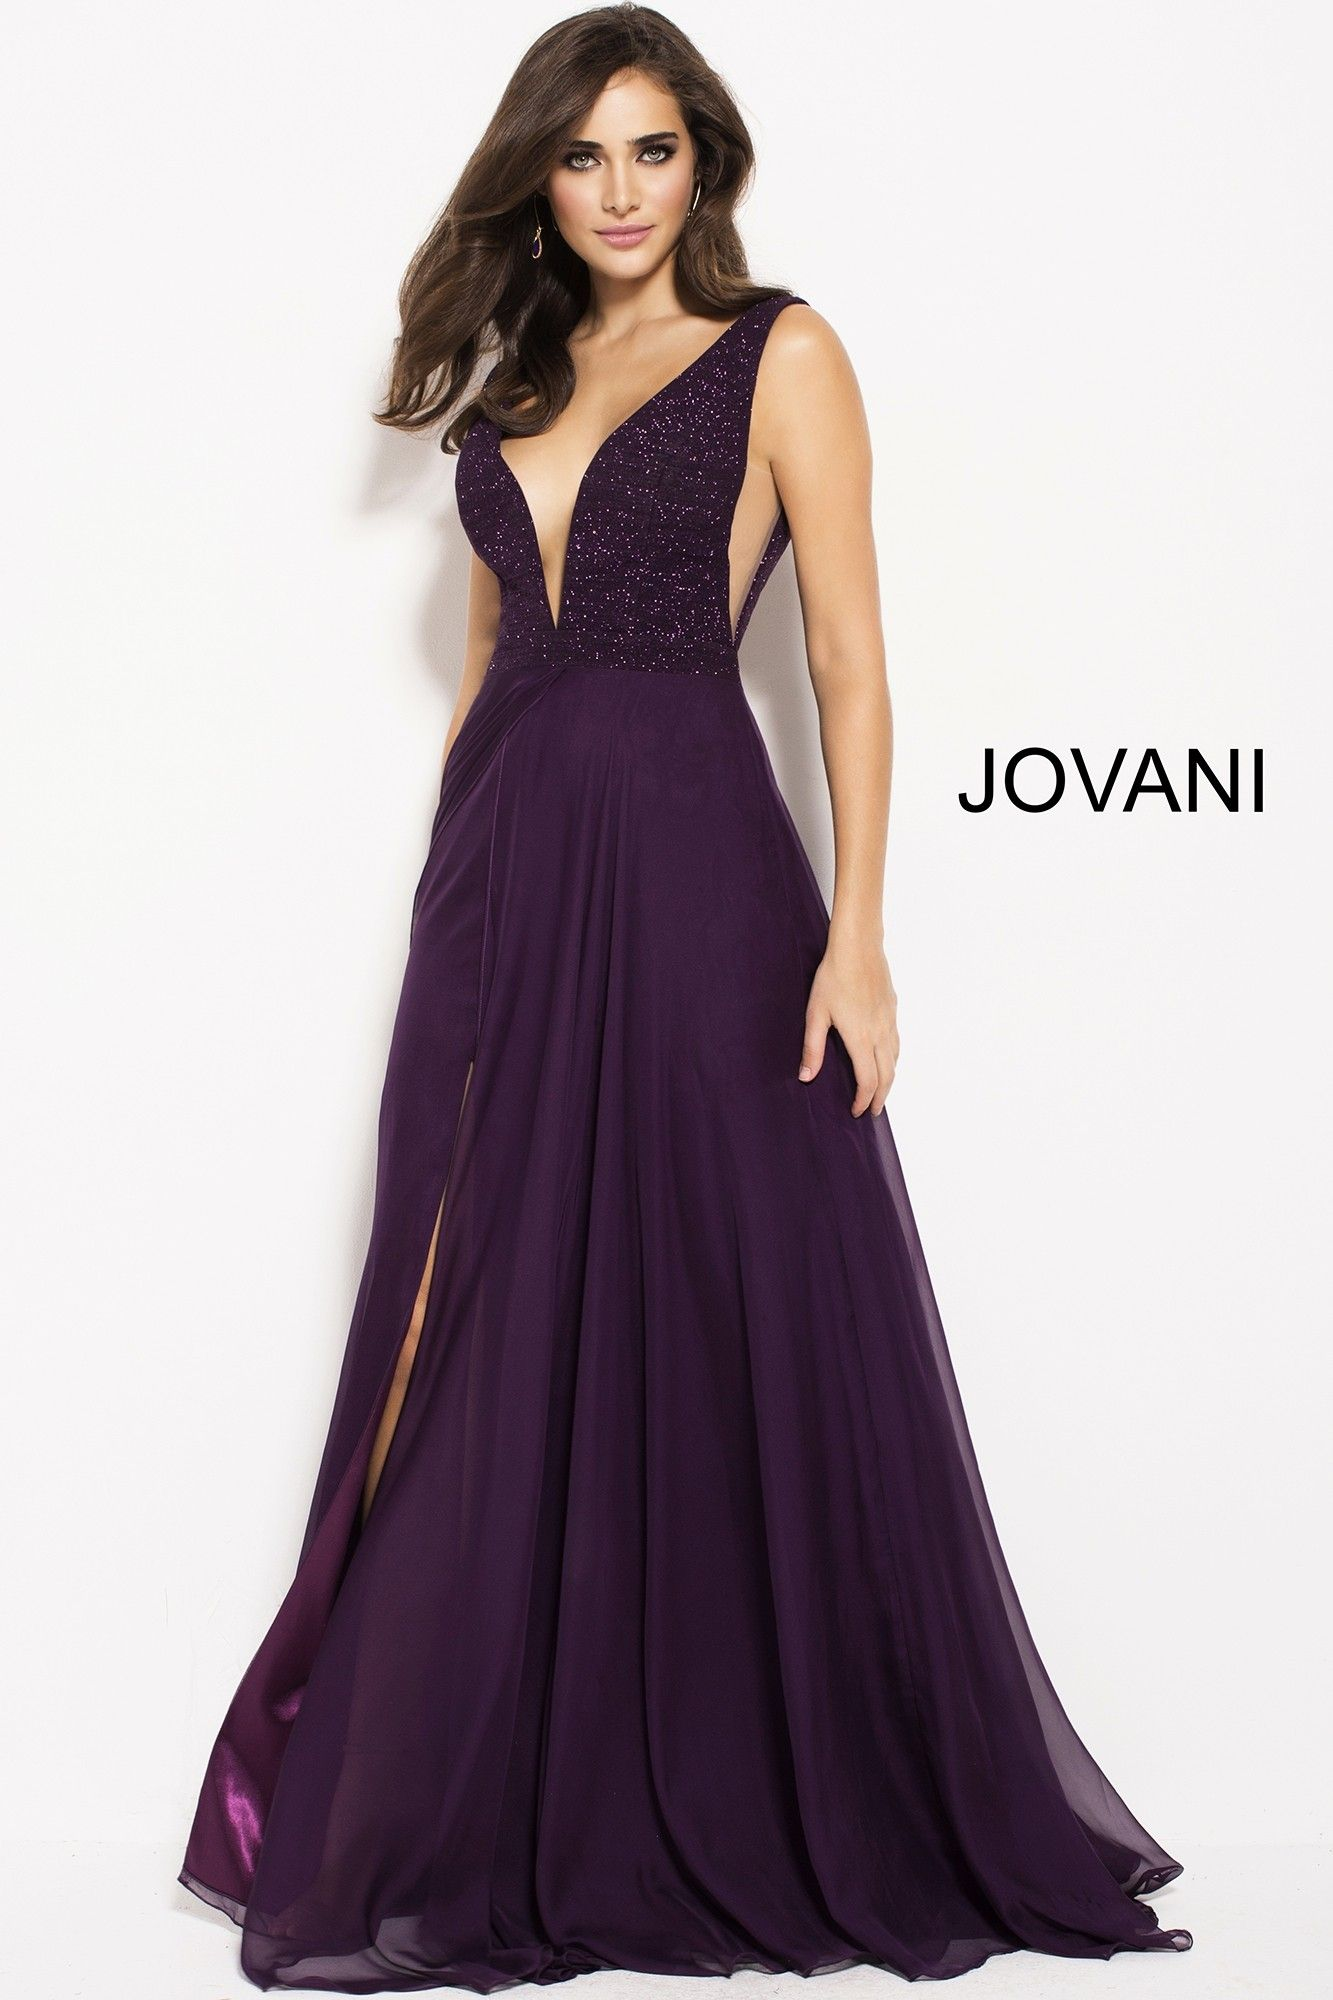 Buy Wedding Jovani dresses with inviting beautiful pictures picture trends